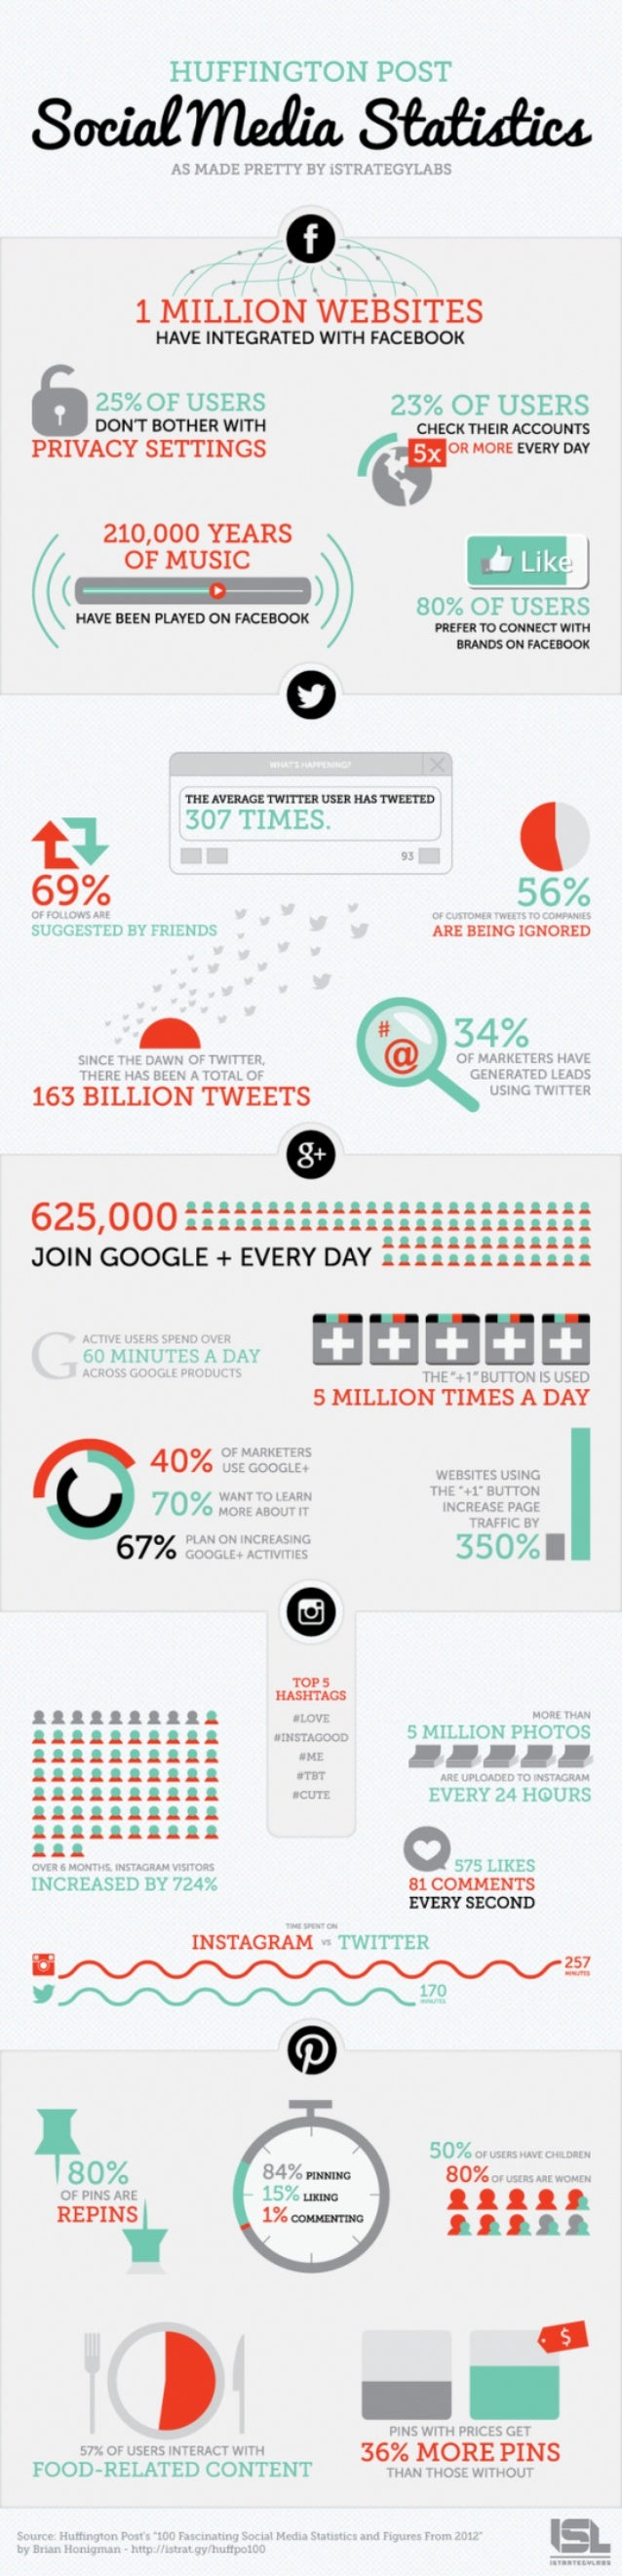 Collaborative IQ with Denise Holt - INFOGRAPHIC Social Media Stats 2012